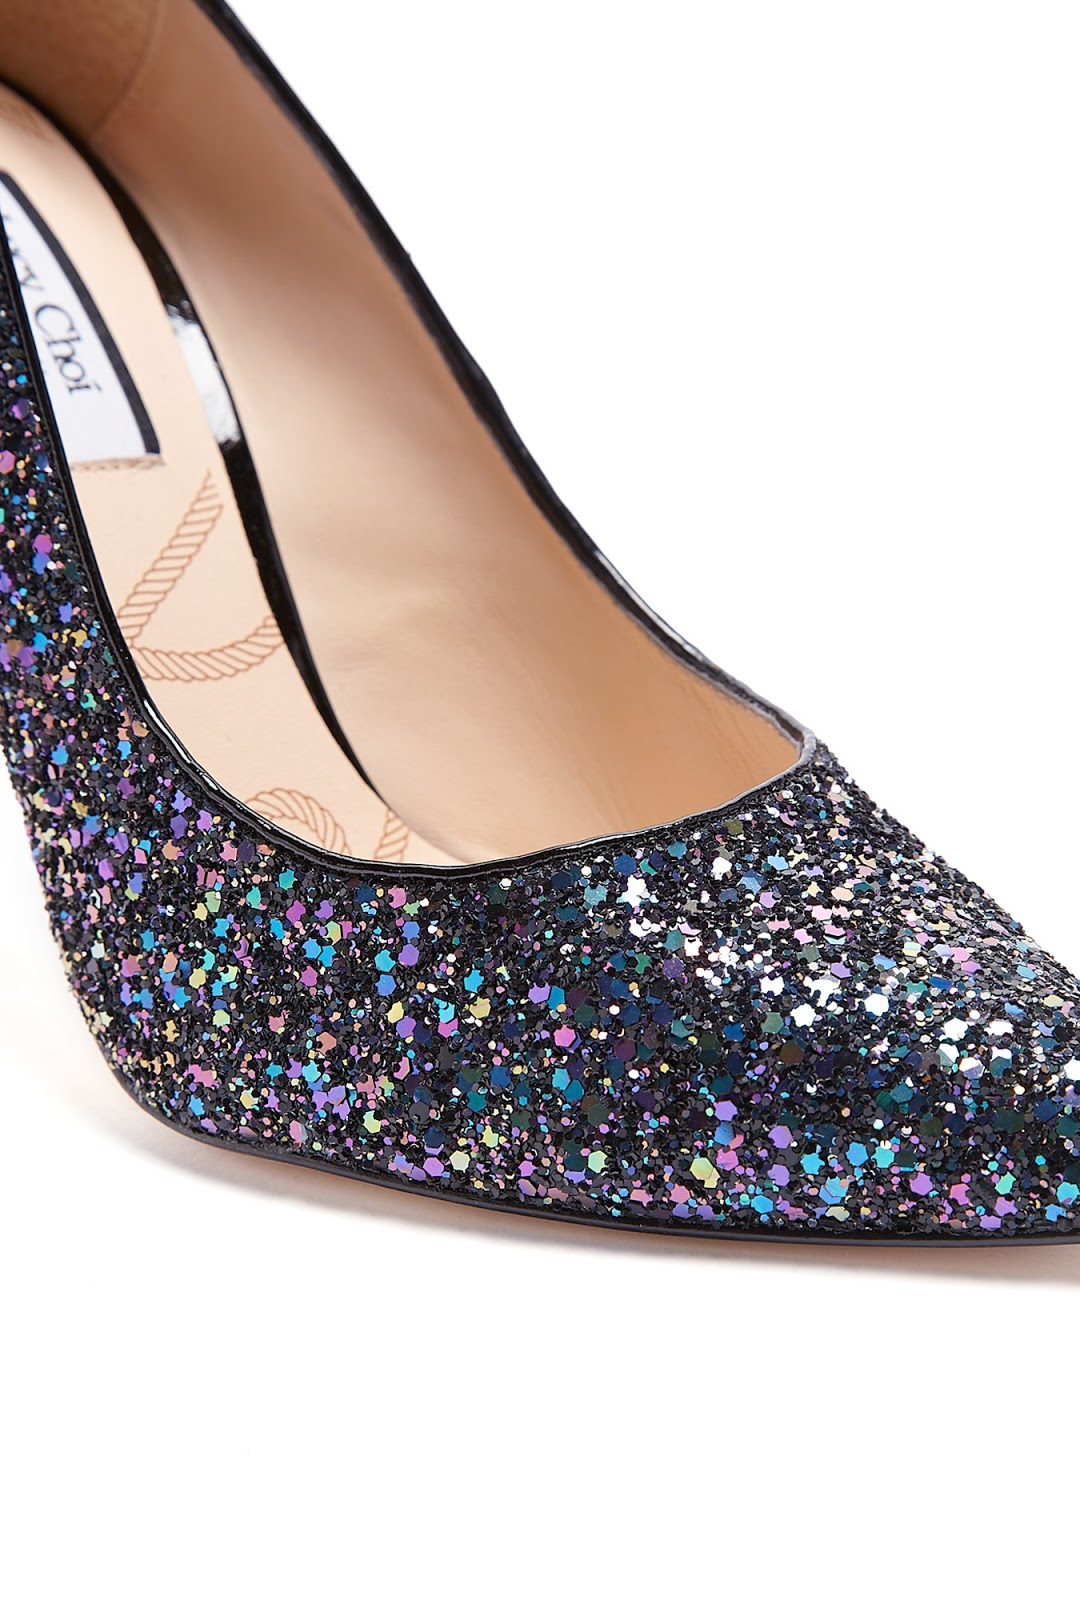 d257f190abcd These sparkly pointed toe pumps would go well with a black dress and a  black clutch. I have recommended pairing them with a pleated silk-chiffon  and ...